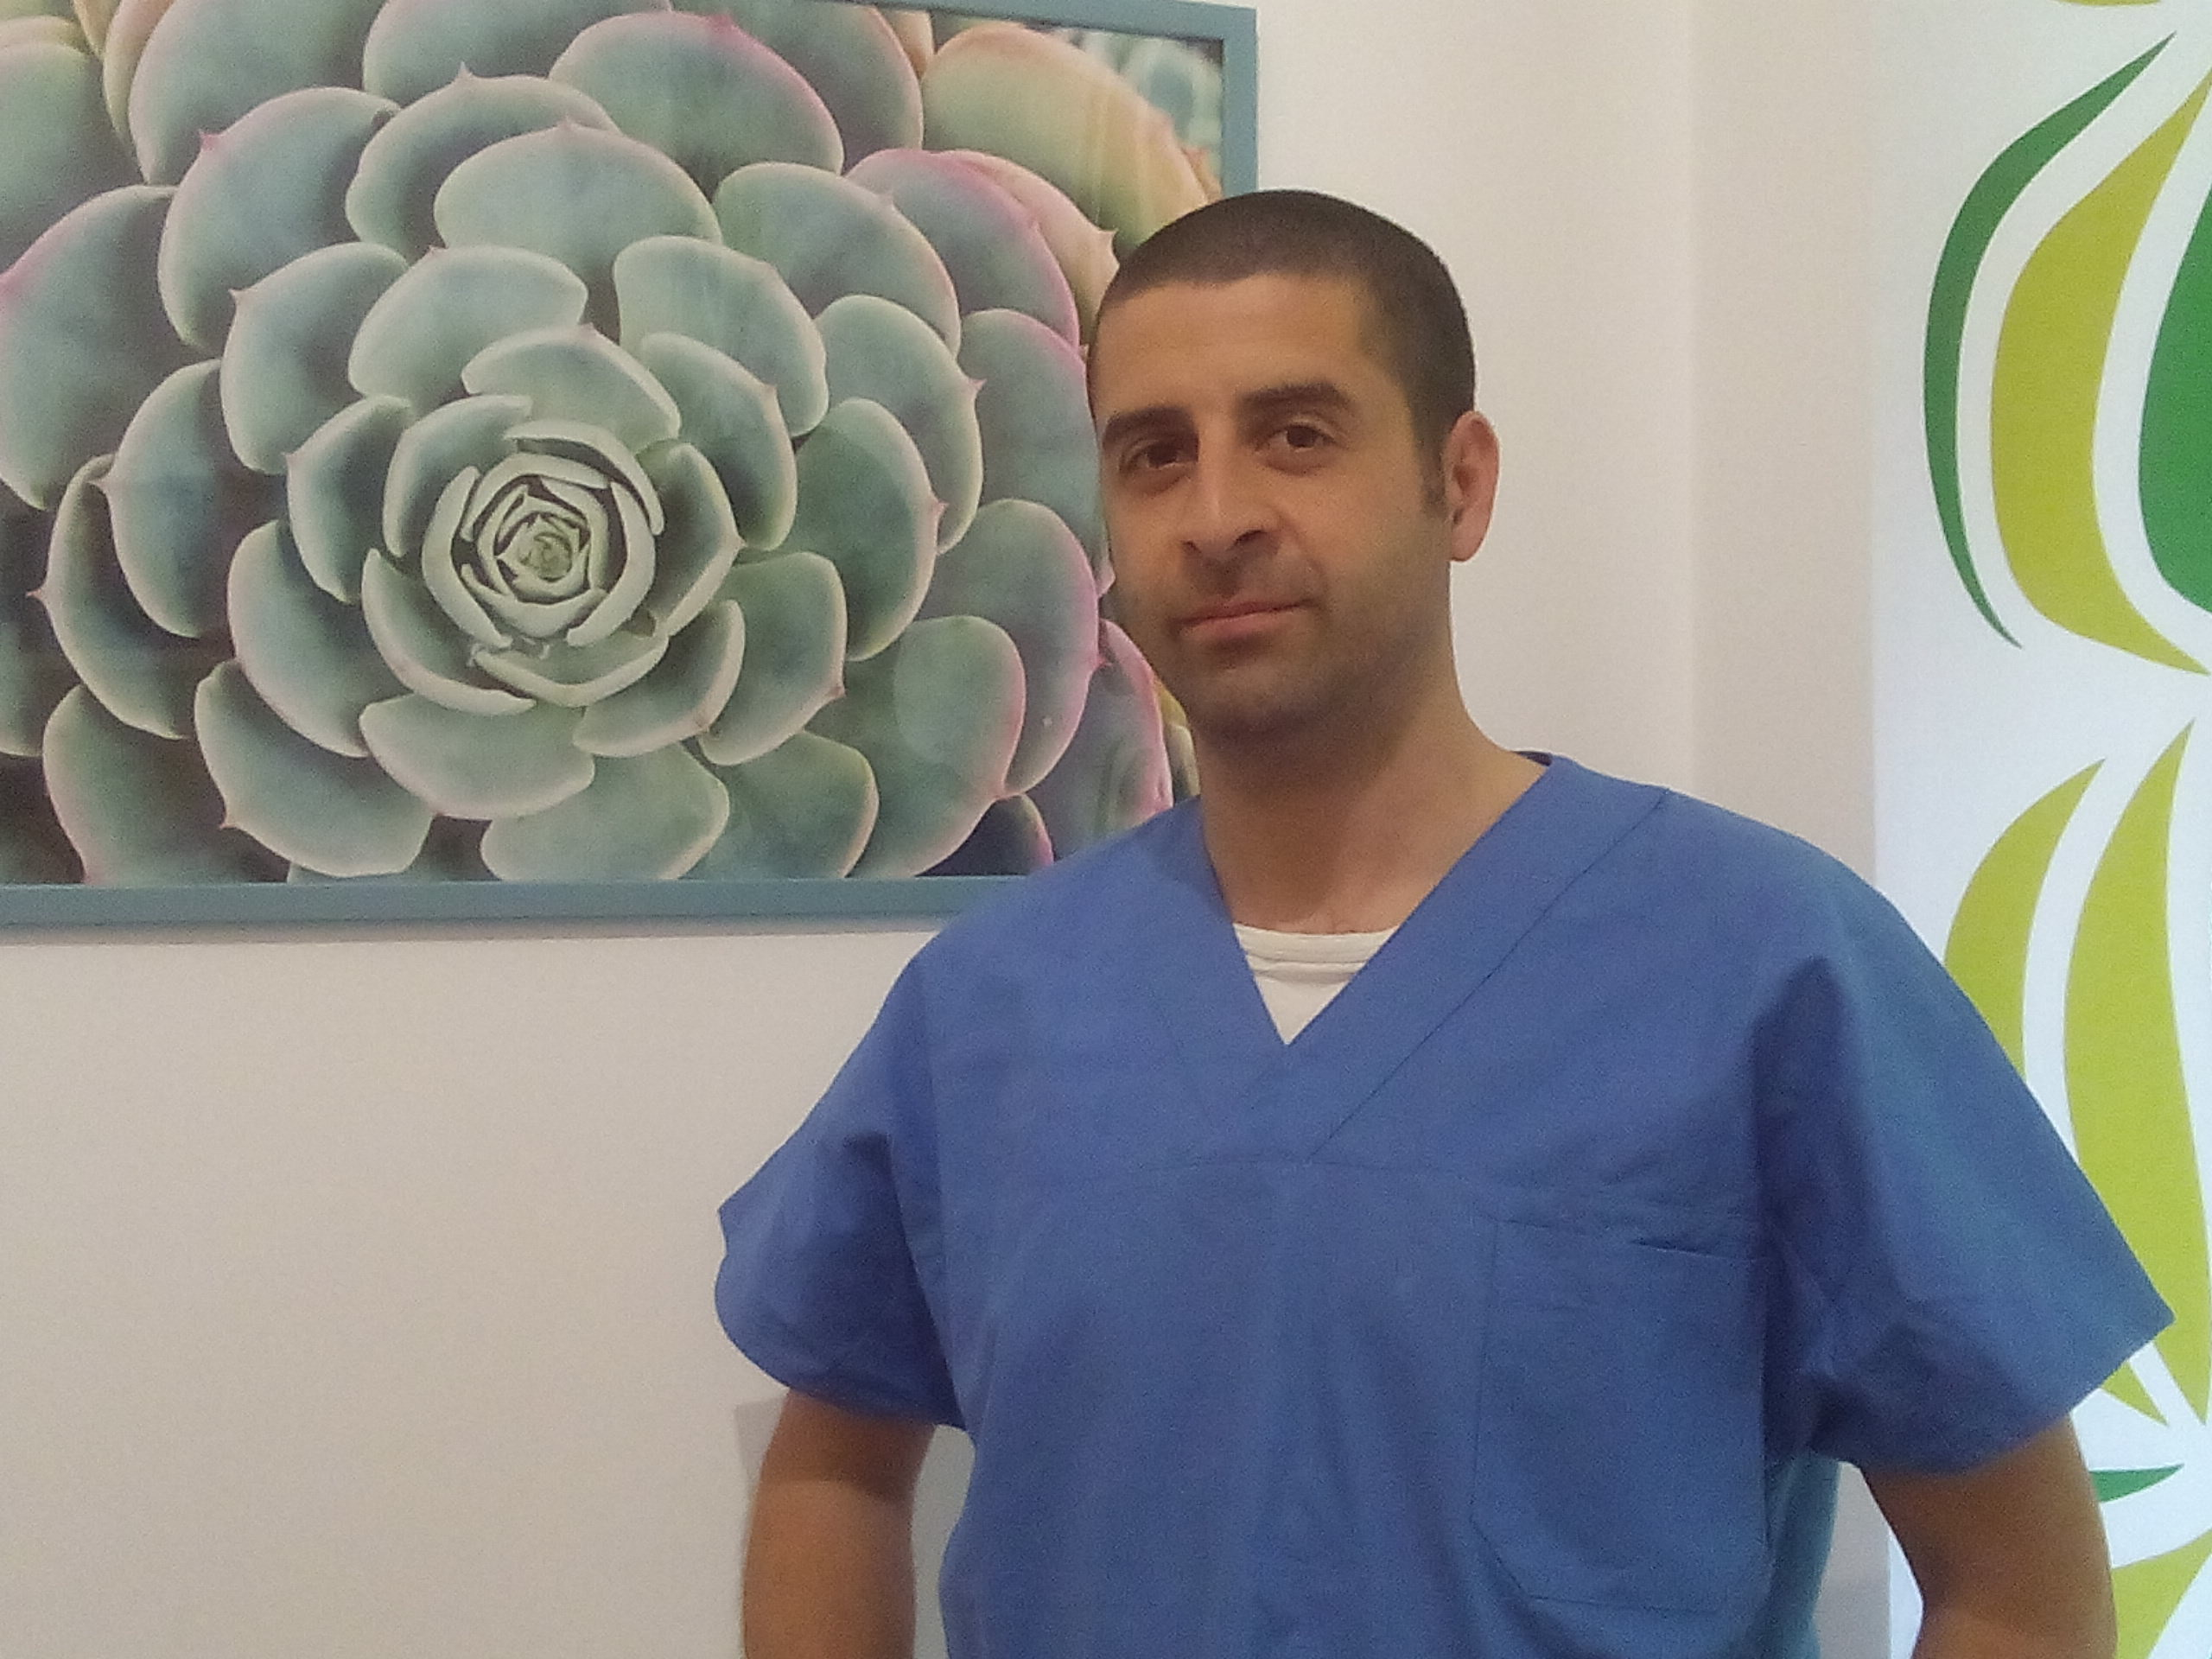 Osteopata Alessandro Celsi